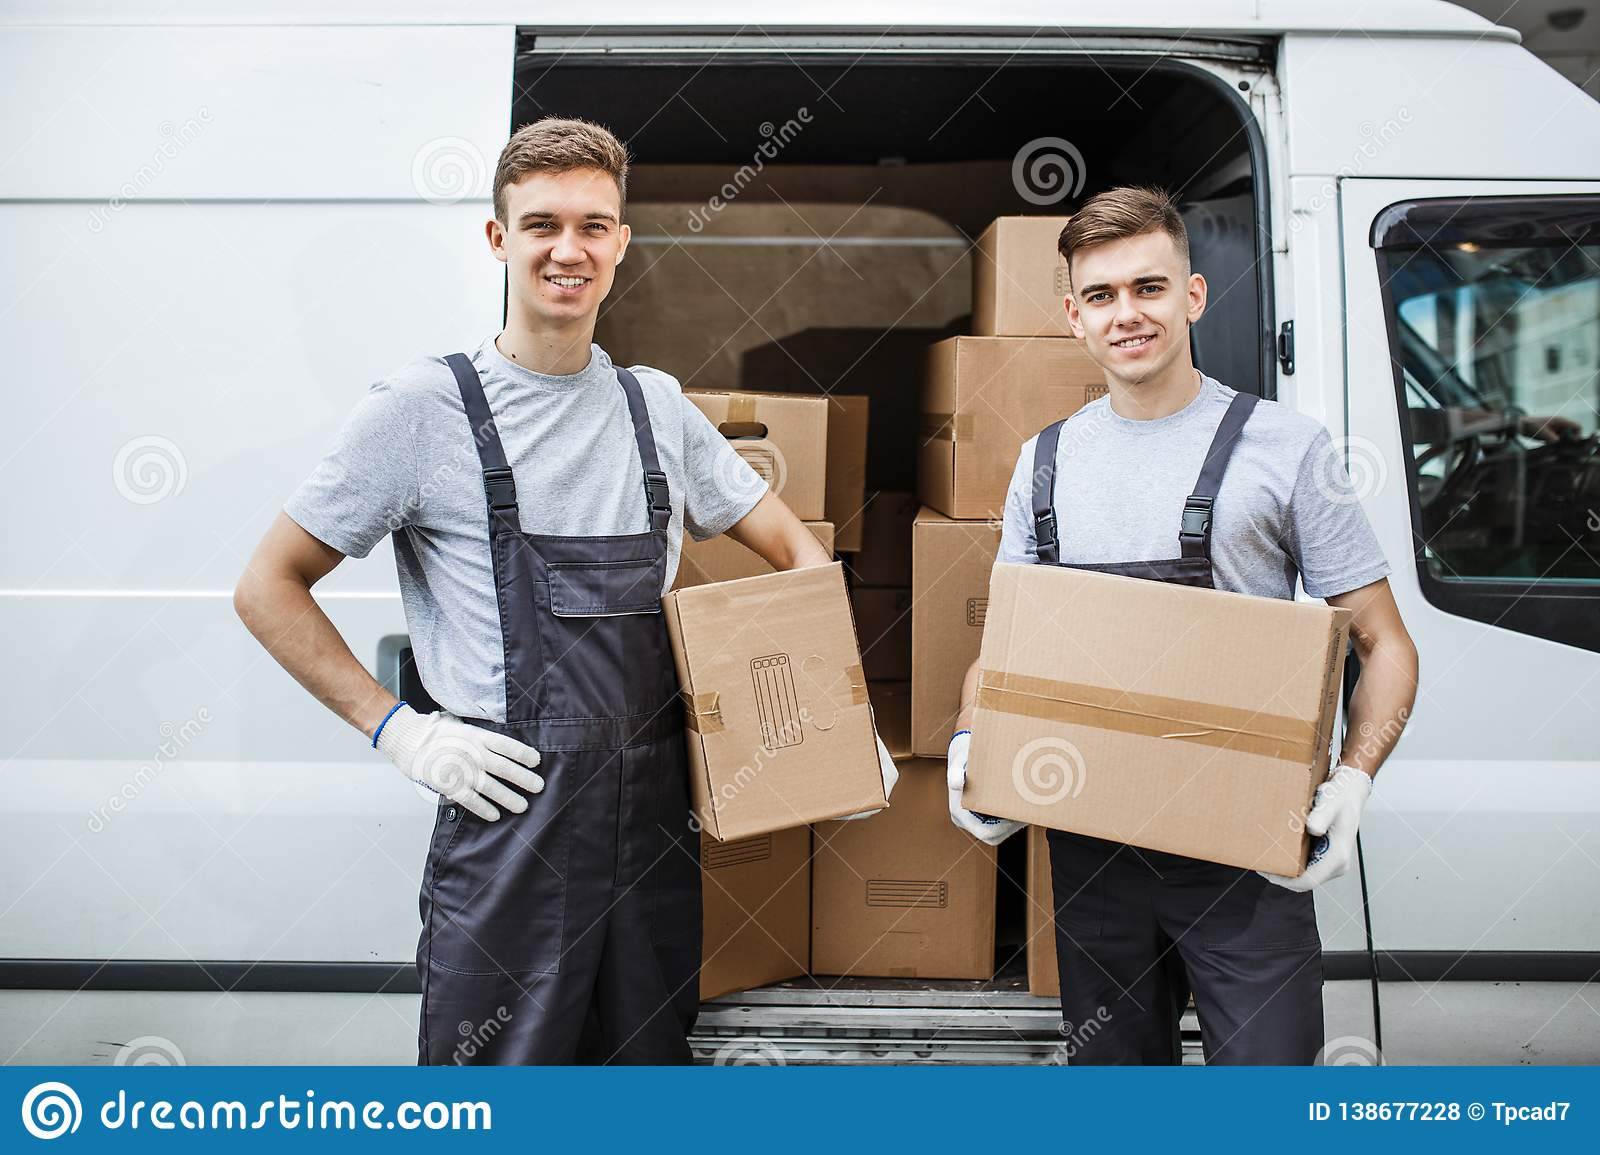 Two young handsome smiling workers wearing uniforms are standing next to the van full of boxes. House move, mover